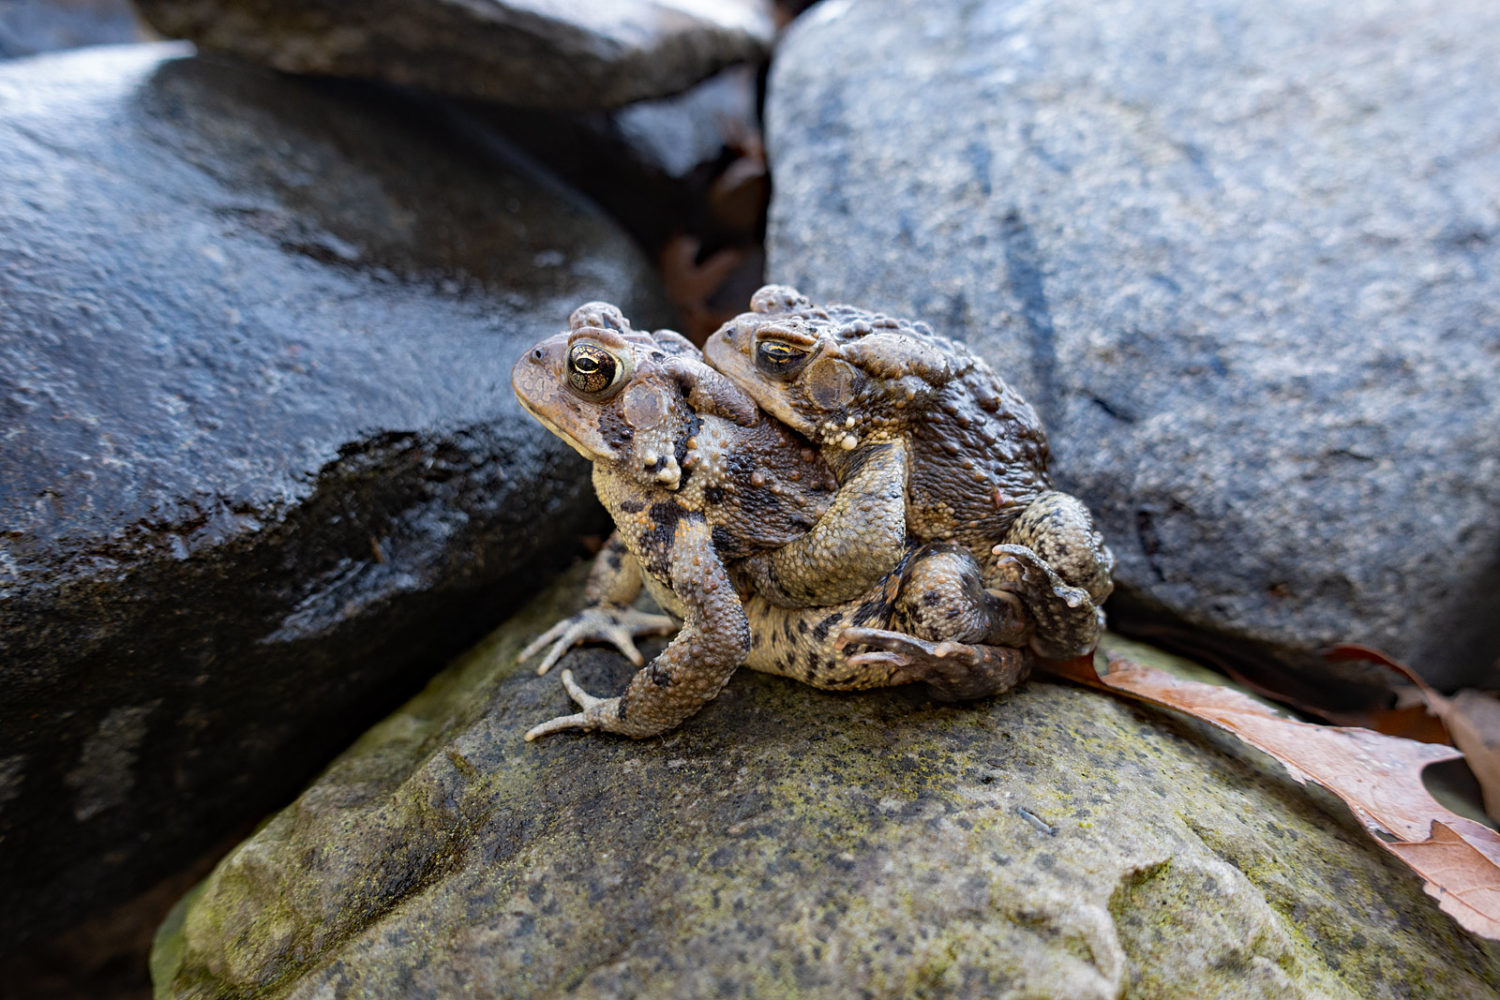 Toads mating in Jared's pond